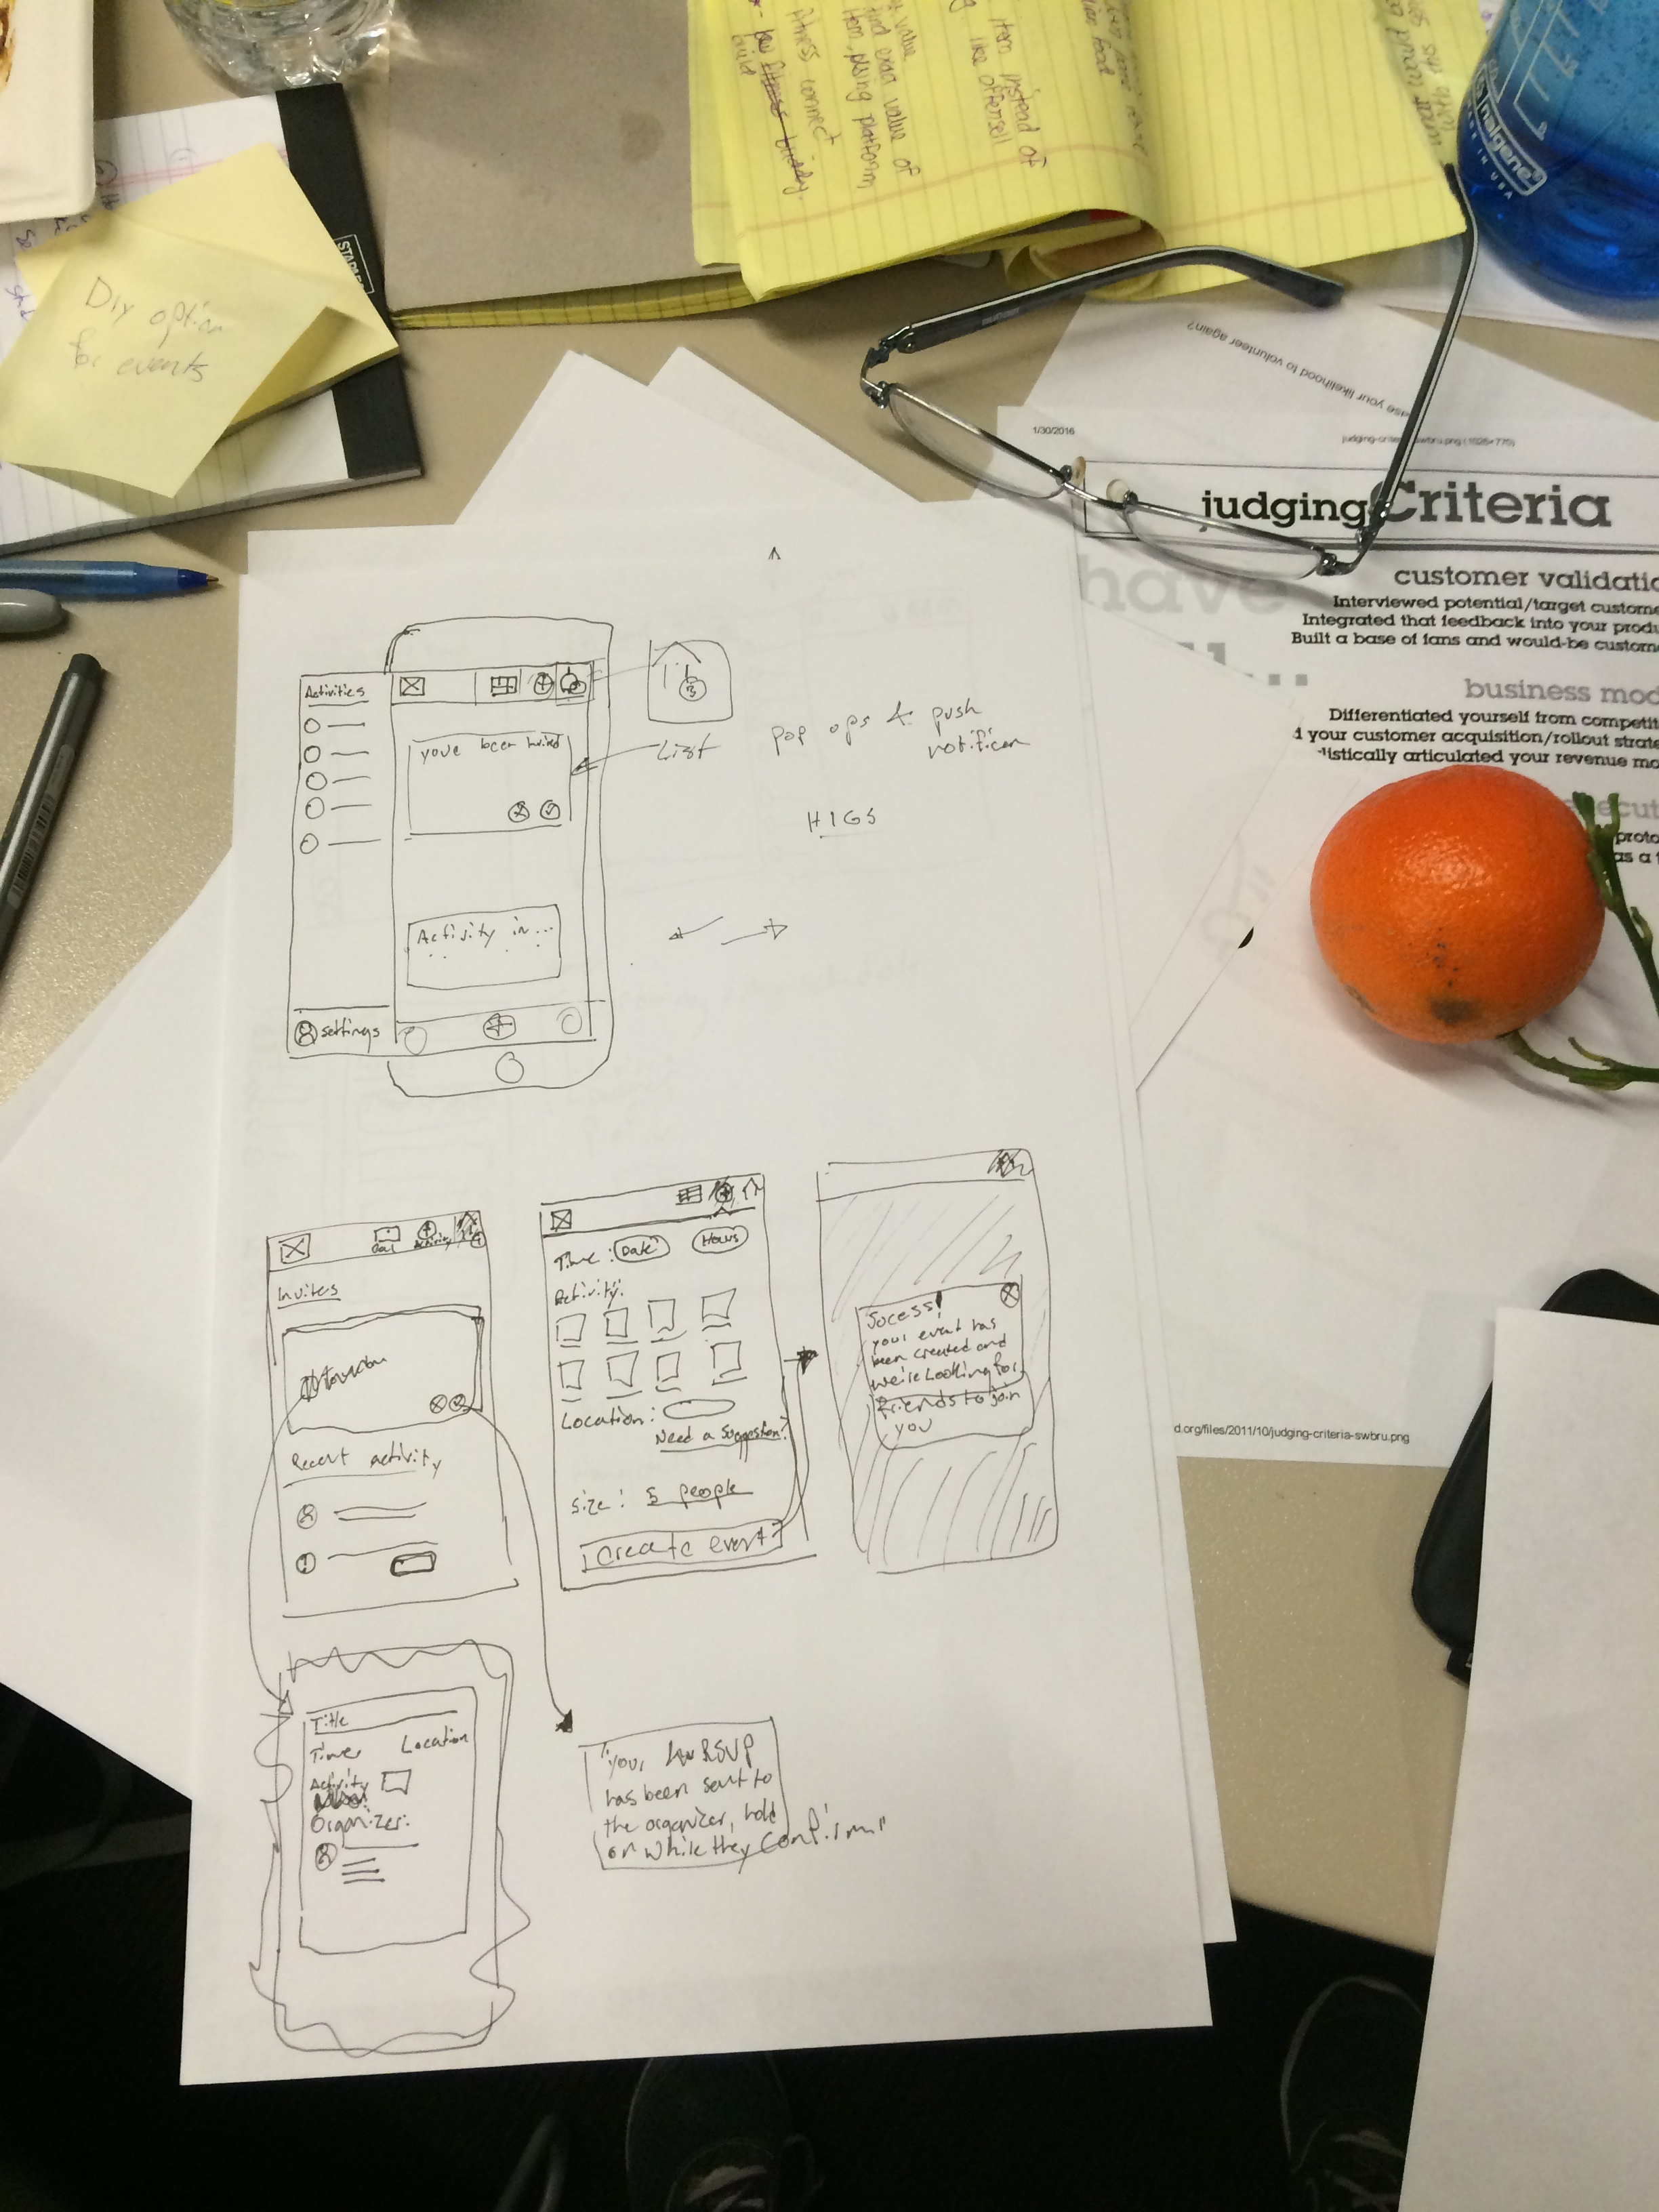 Home page, drawer menu, flow for on-boarding and setting up an account. filling out interests and an orange